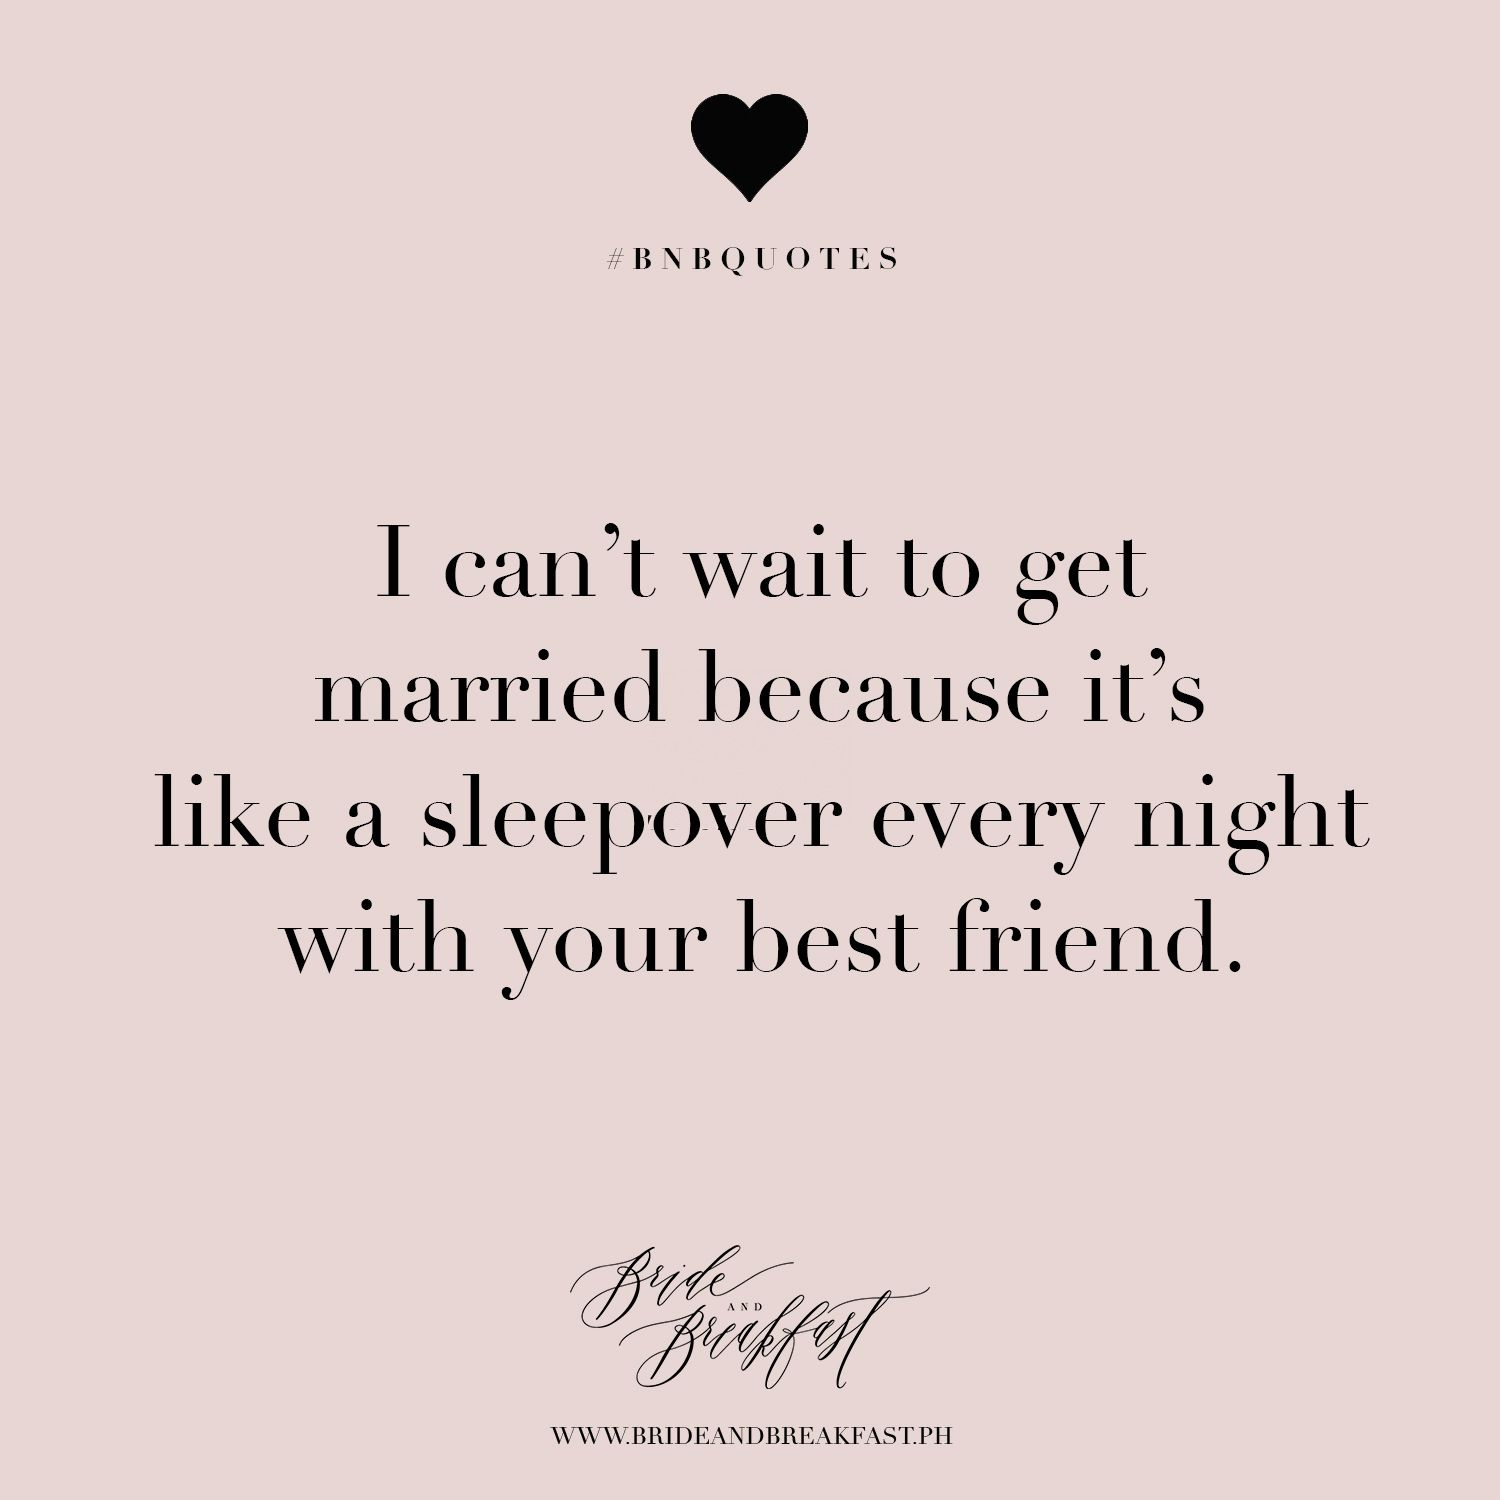 Getting Married Quotes I can't wait to get married because it's like a sleepover every  Getting Married Quotes